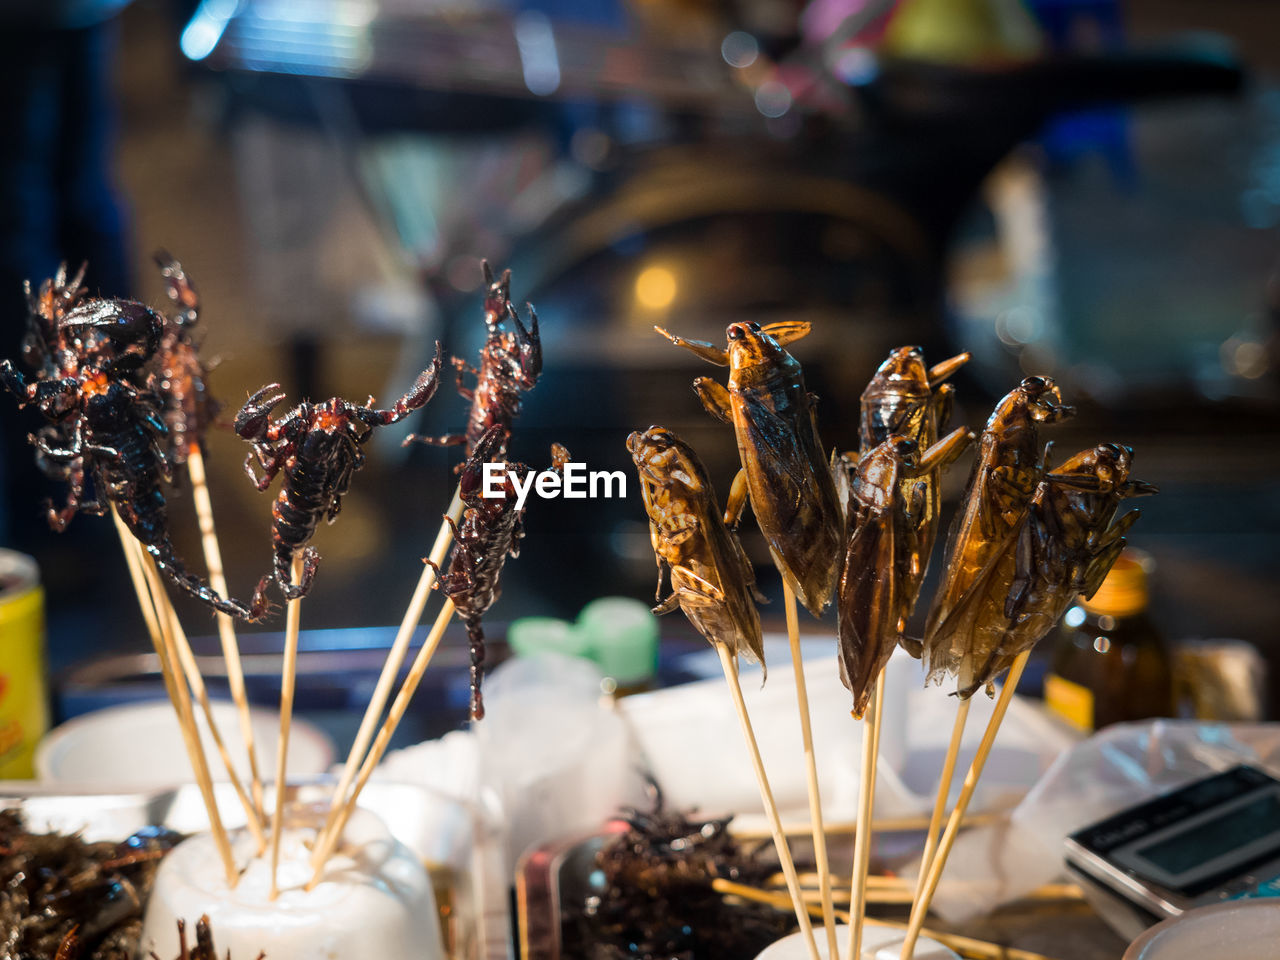 Close-Up Of Fried Cockroaches And Scorpions On Skewers For Sale As Snack In Chinatown, Bangkok, Thailand